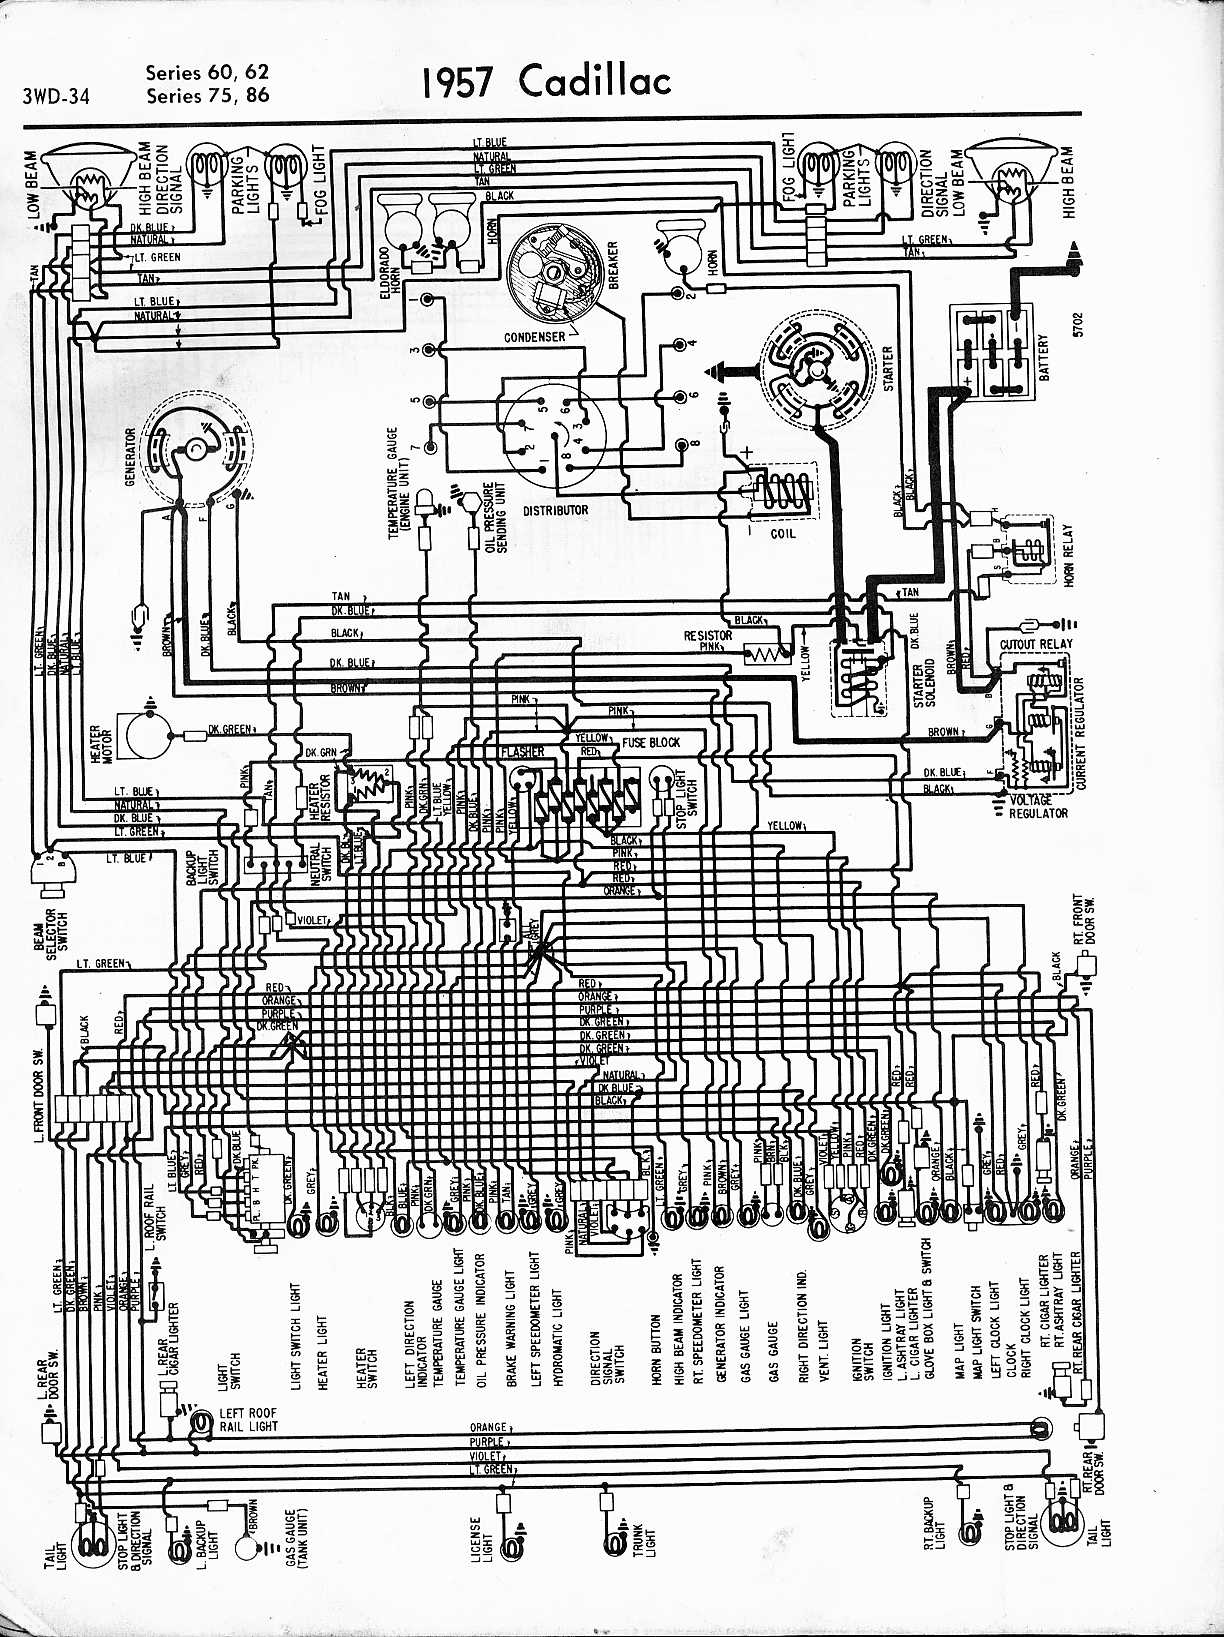 [DIAGRAM_4PO]  DIAGRAM] Free Cadillac Wiring Diagrams FULL Version HD Quality Wiring  Diagrams - PLANDIAGRAMS.ARTEMISMAIL.FR | Cadillac Seville Wiring |  | Diagram Database